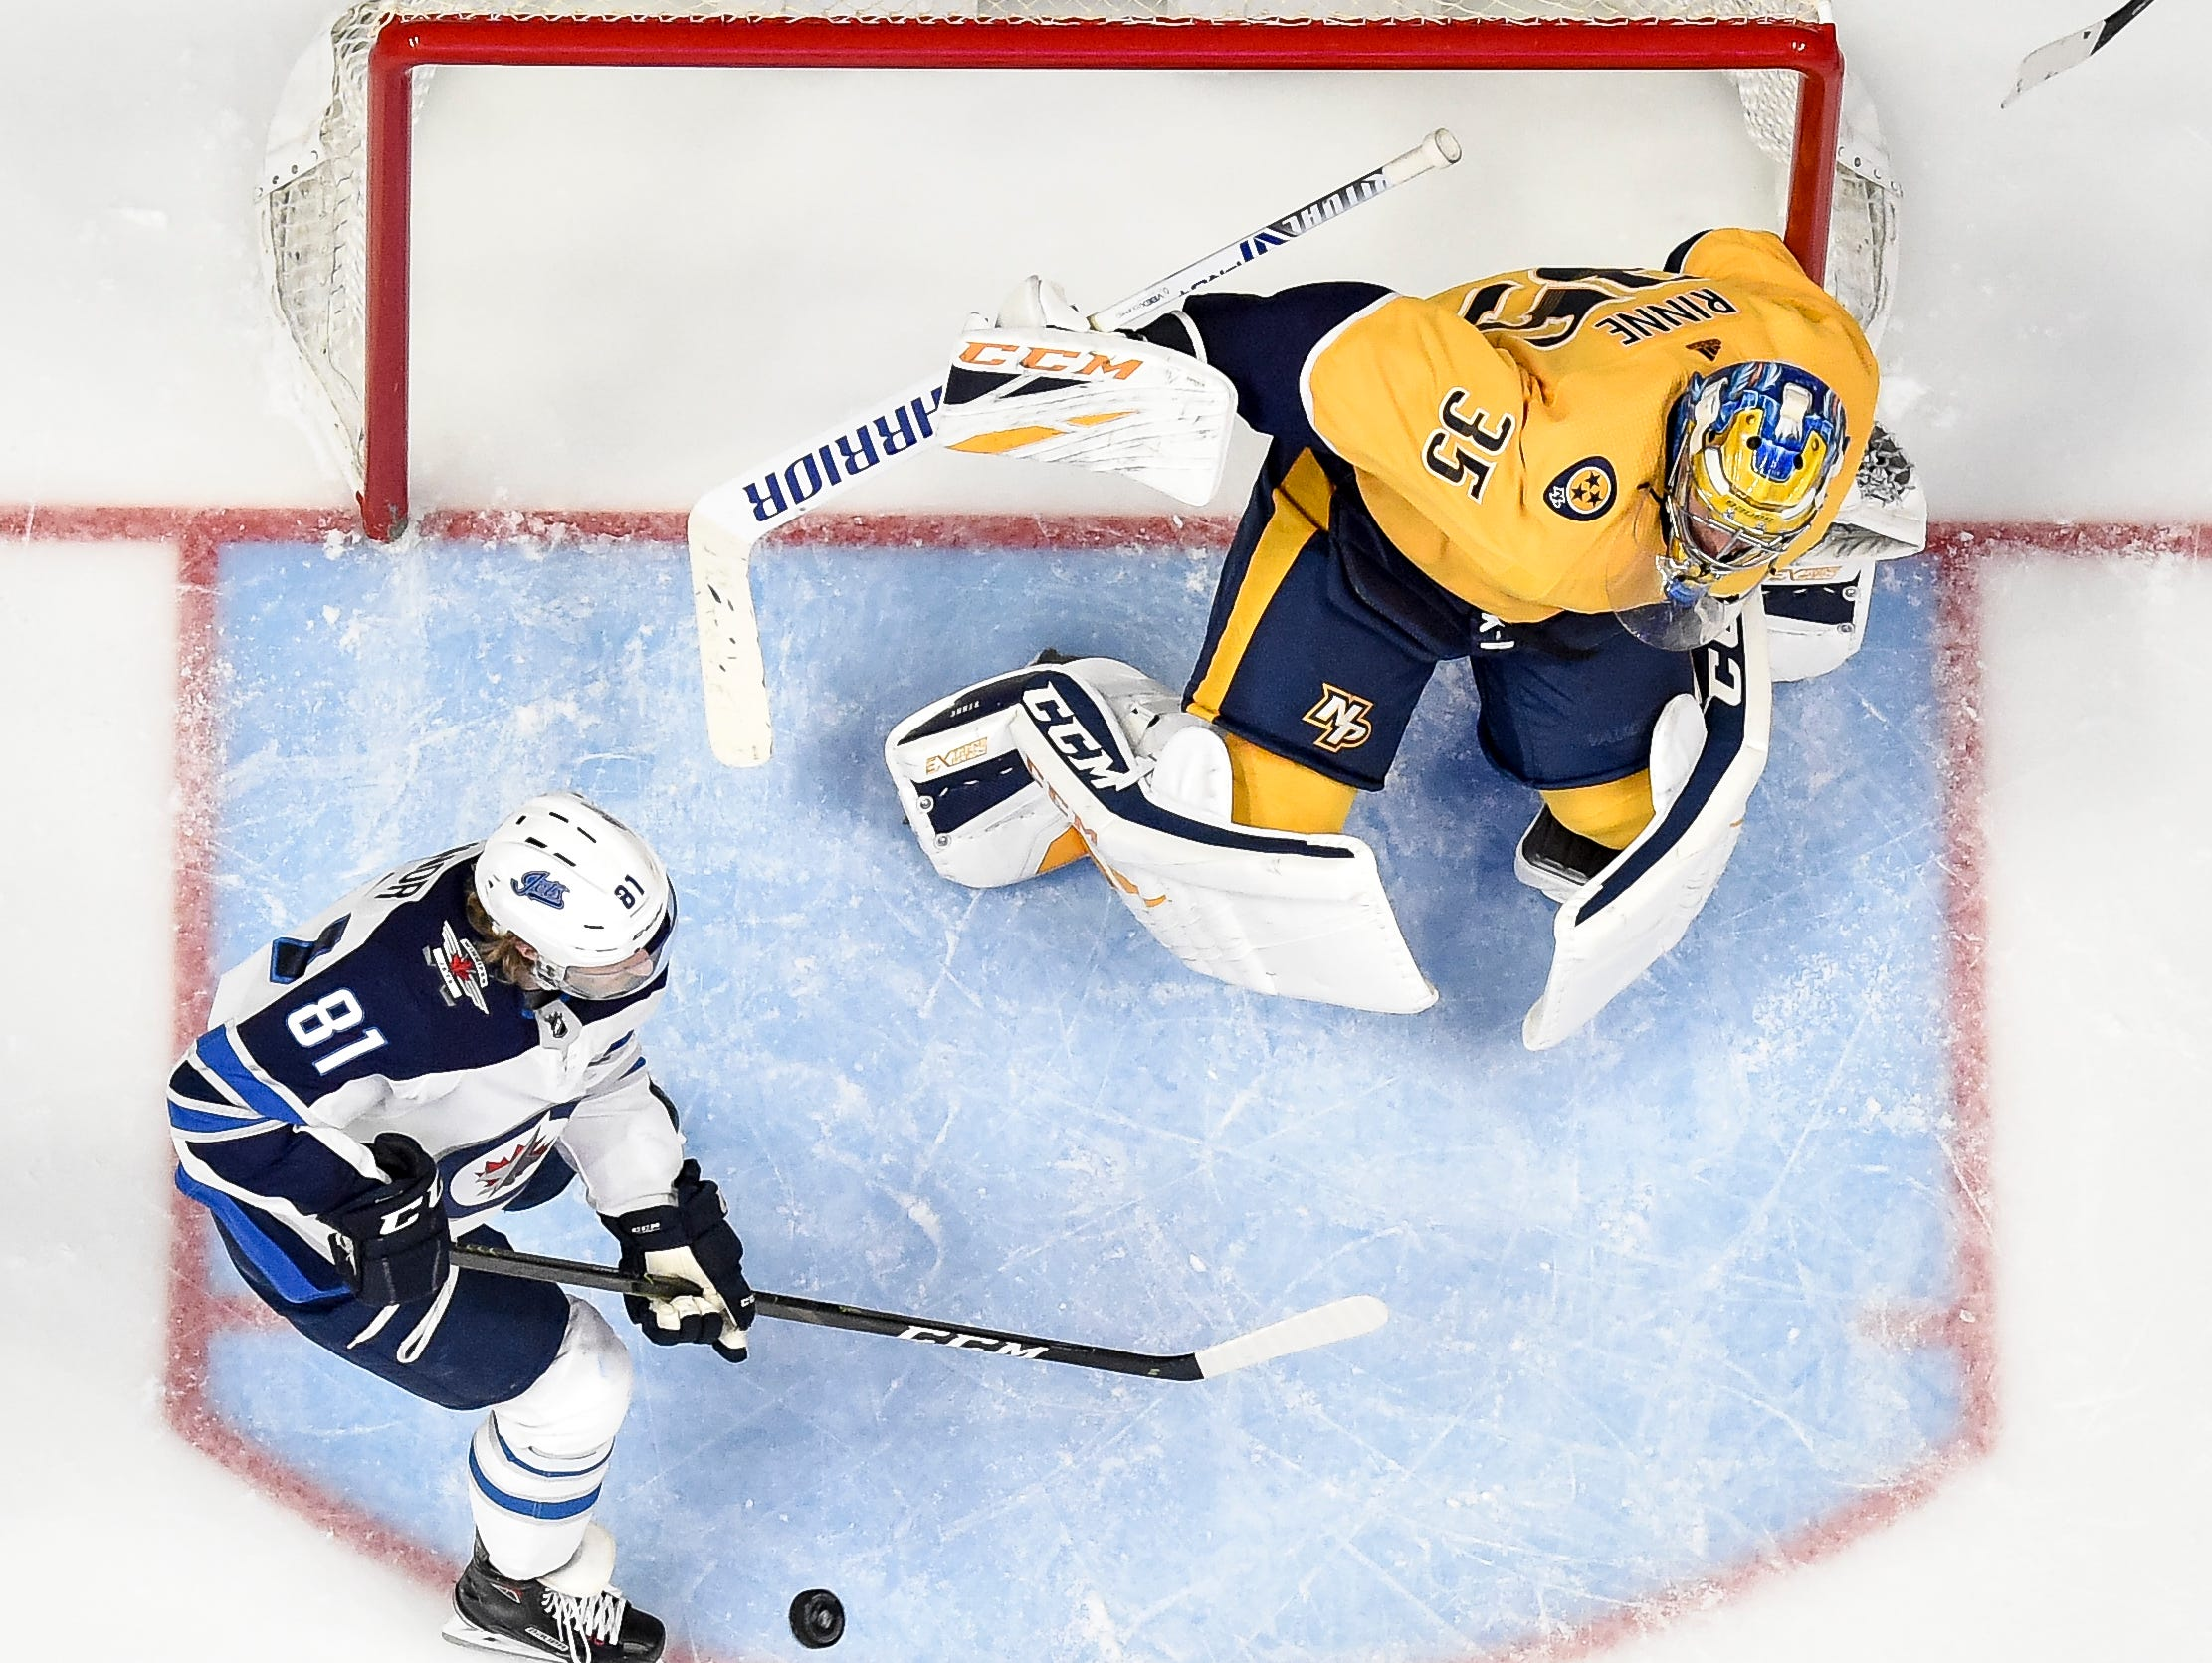 Nashville Predators goaltender Pekka Rinne (35) defends against Winnipeg Jets left wing Kyle Connor (81) during the third period at Bridgestone Arena in Nashville, Tenn., Thursday, Jan. 17, 2019.